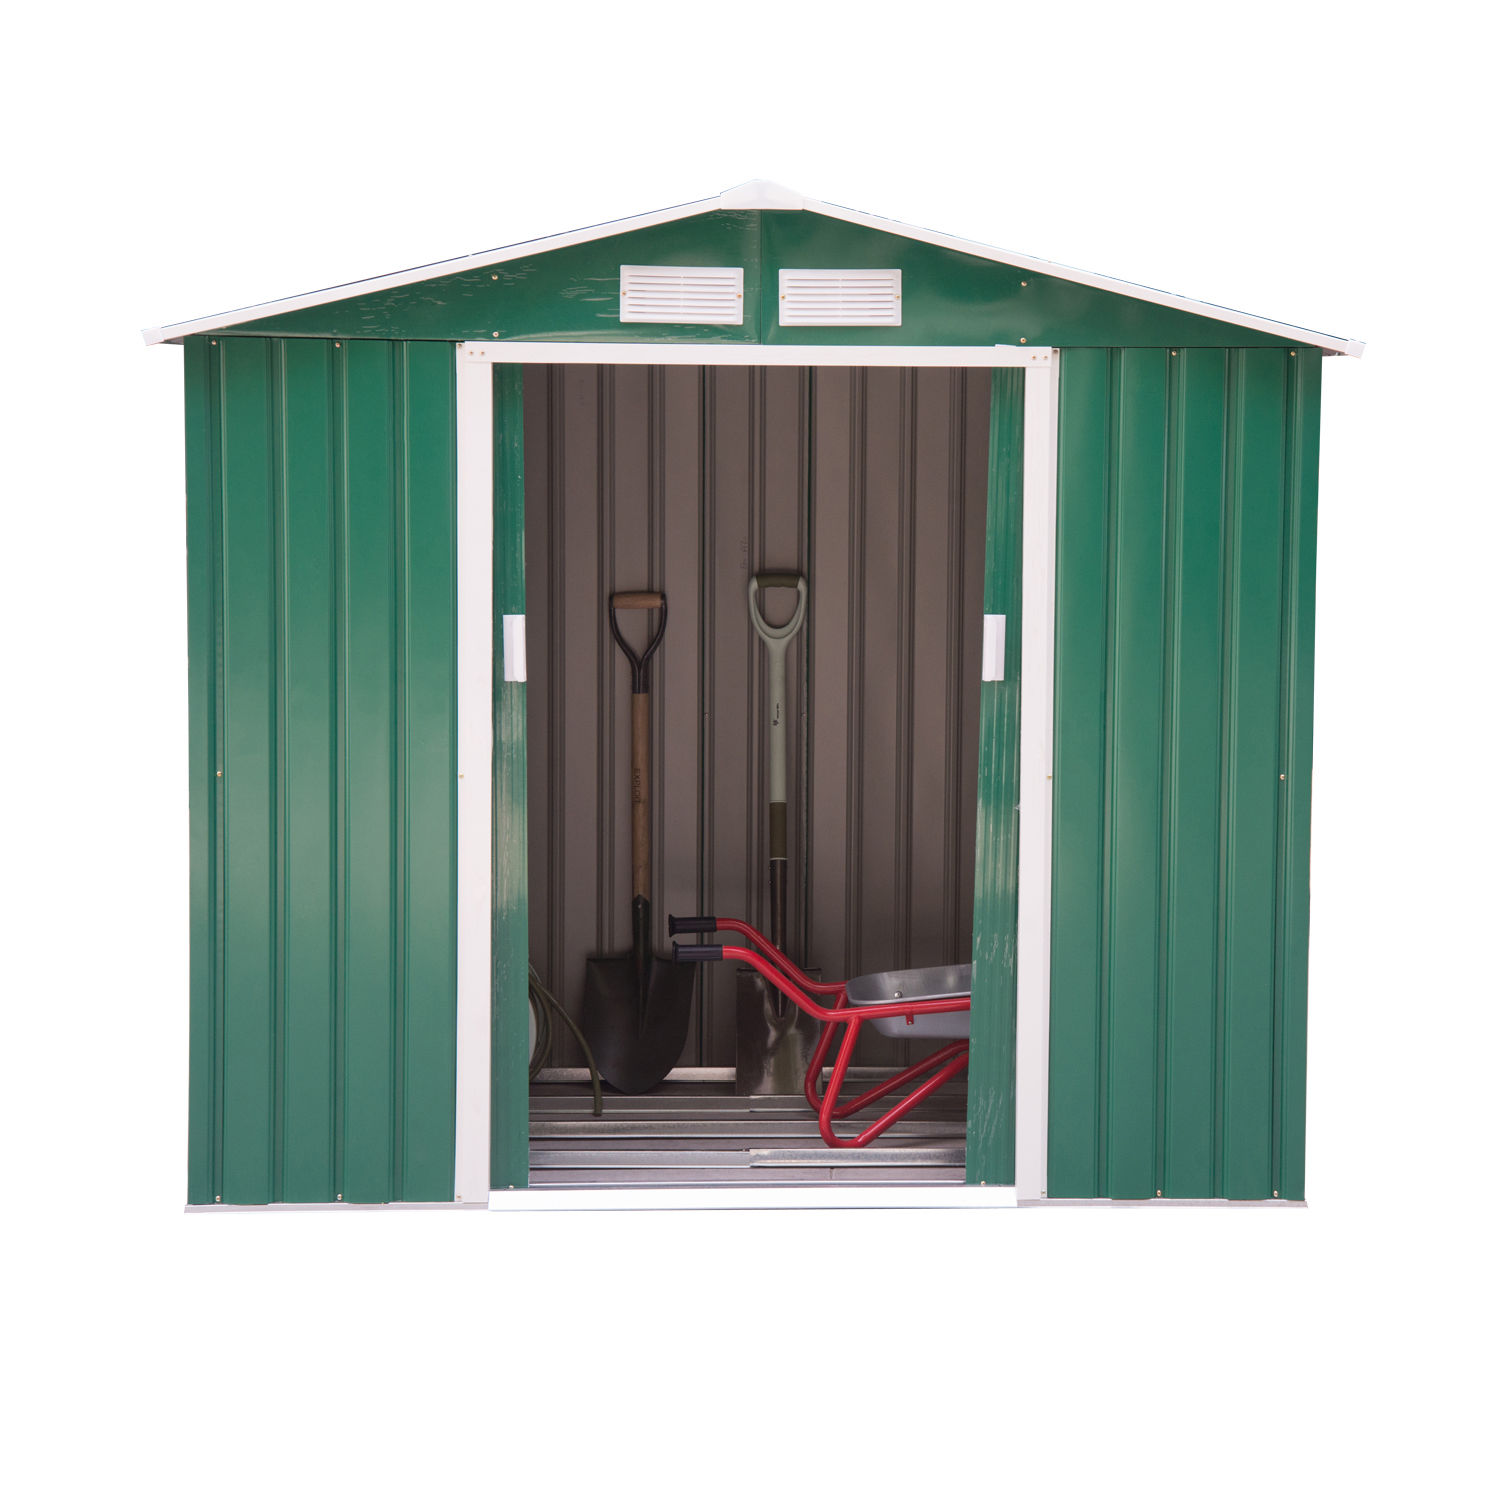 Outsunny 6x4ft Garden Shed Patio Foundation Storage Unit